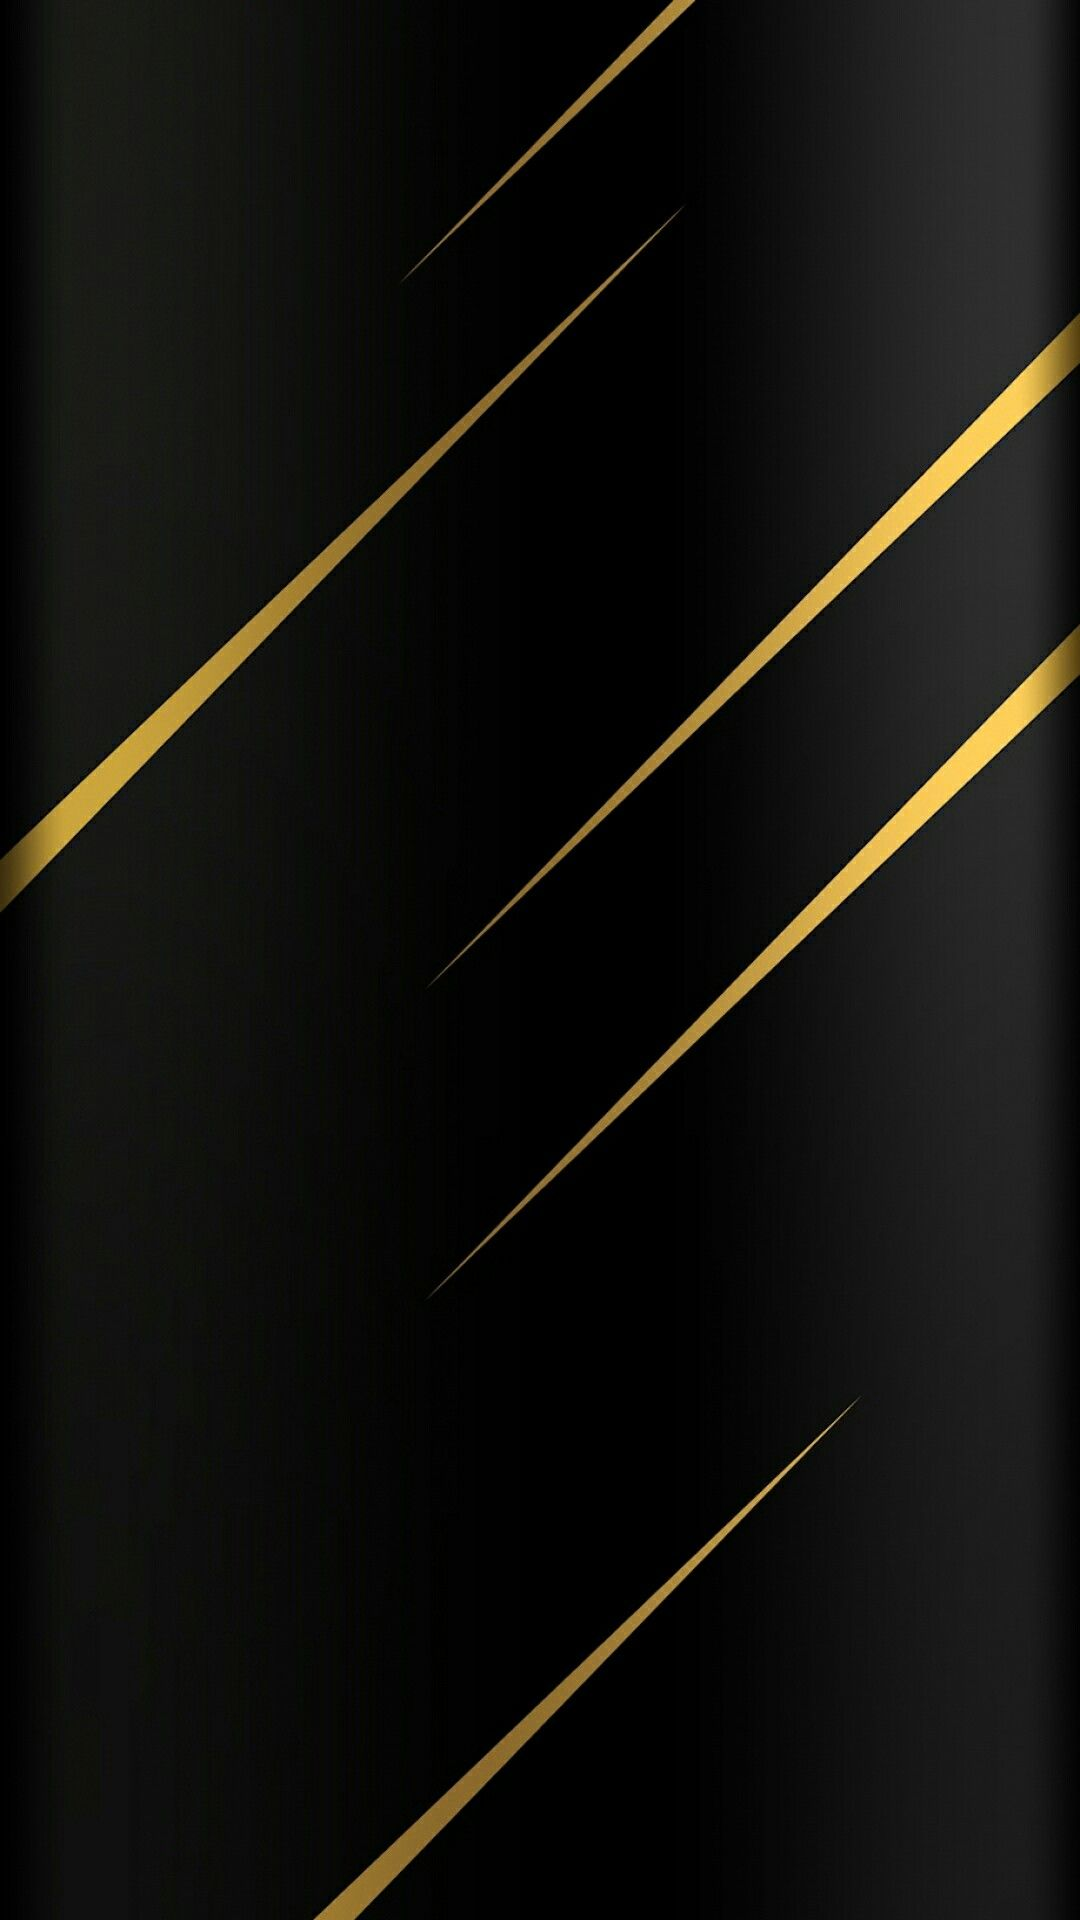 Abstract Black Wallpaper For Mobile Gold Wallpaper Phone